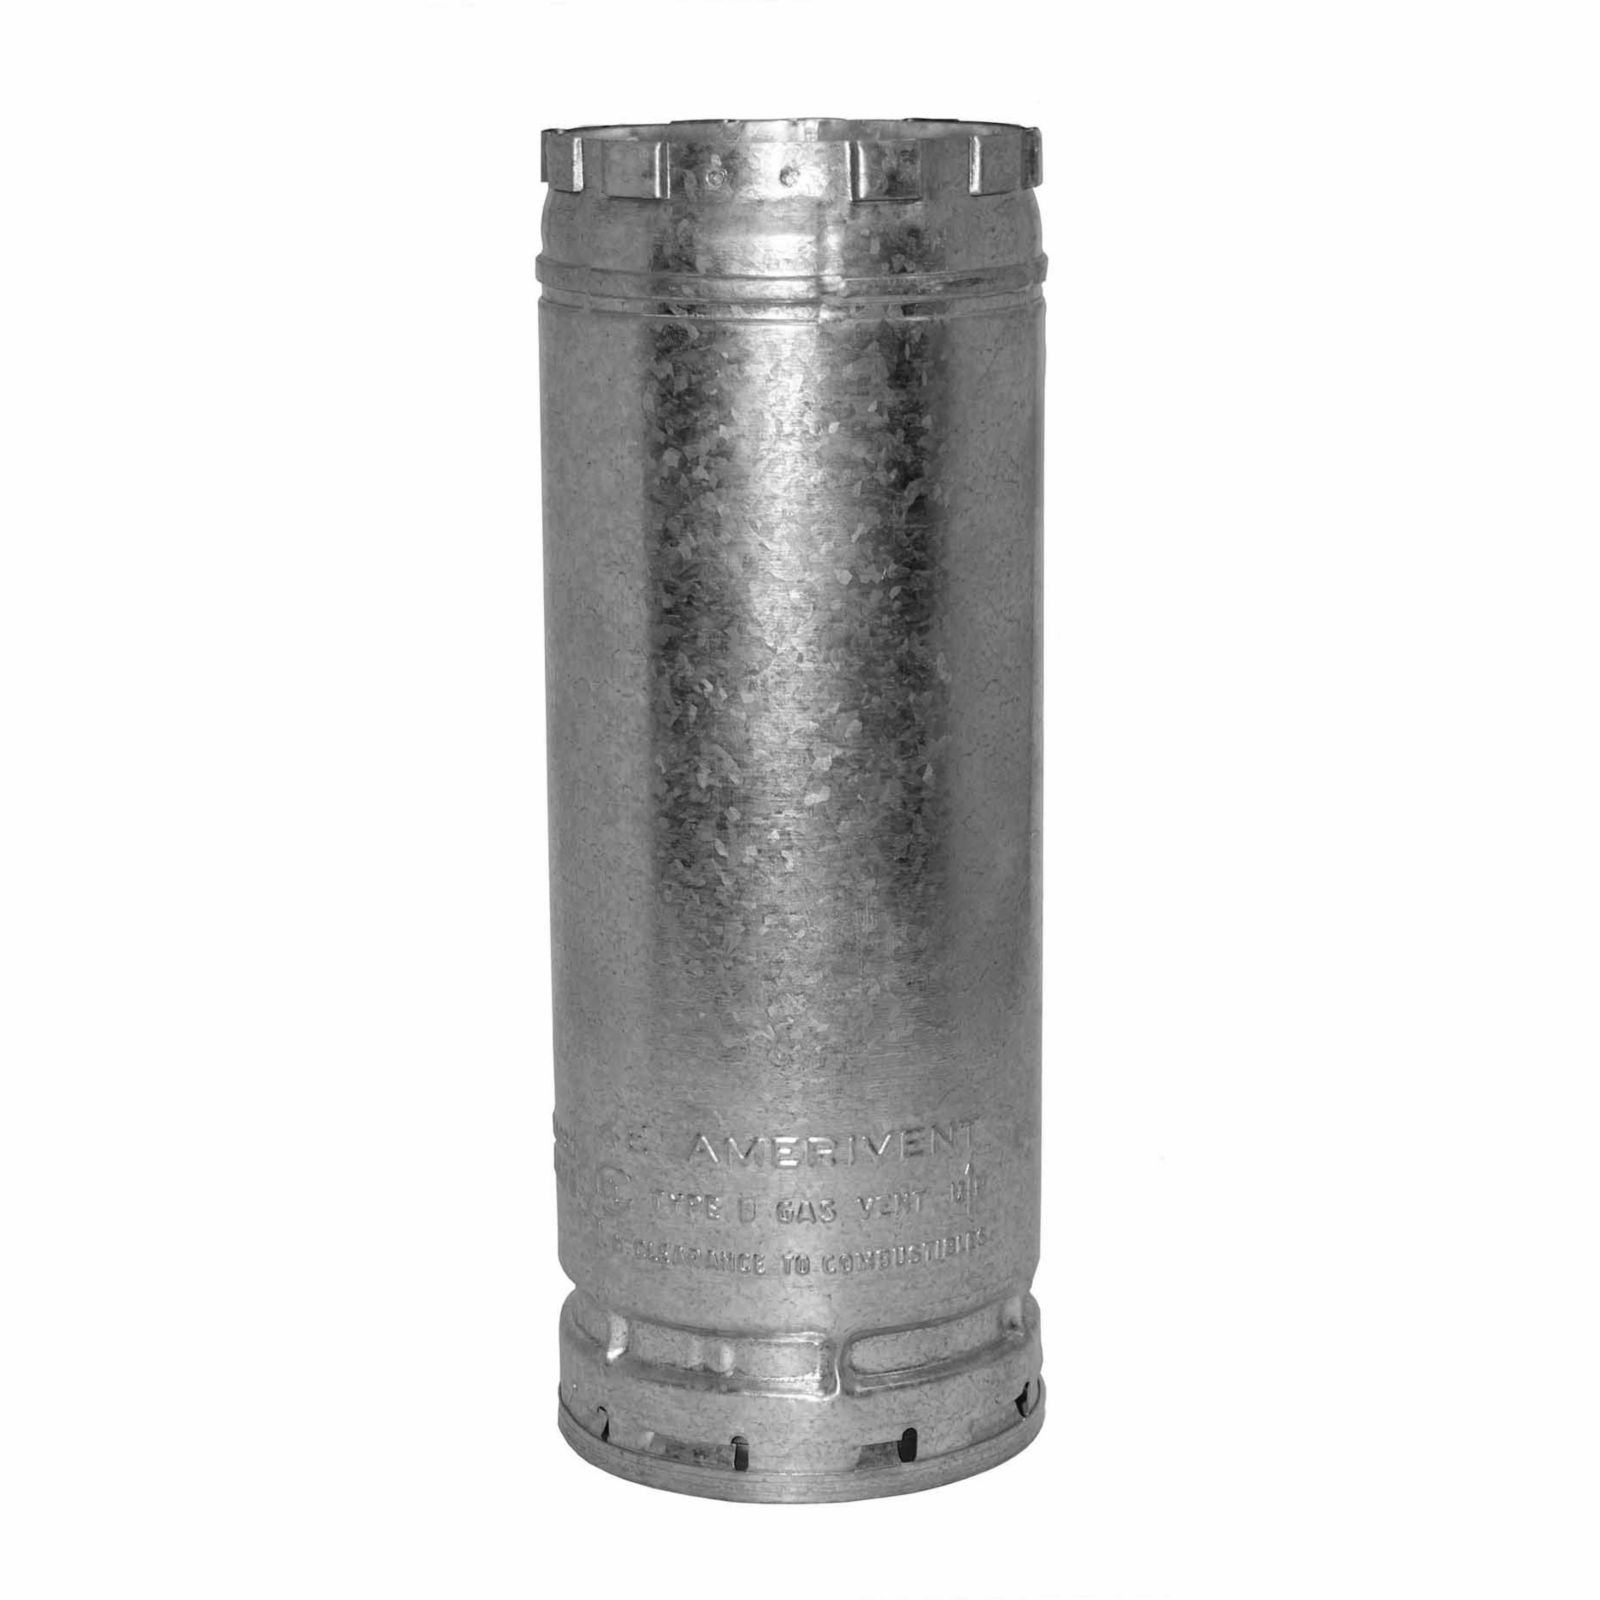 "AmeriVent 4E3 - Pipe Section Type B Gas Vent, 4"" Round X 36"" Length"